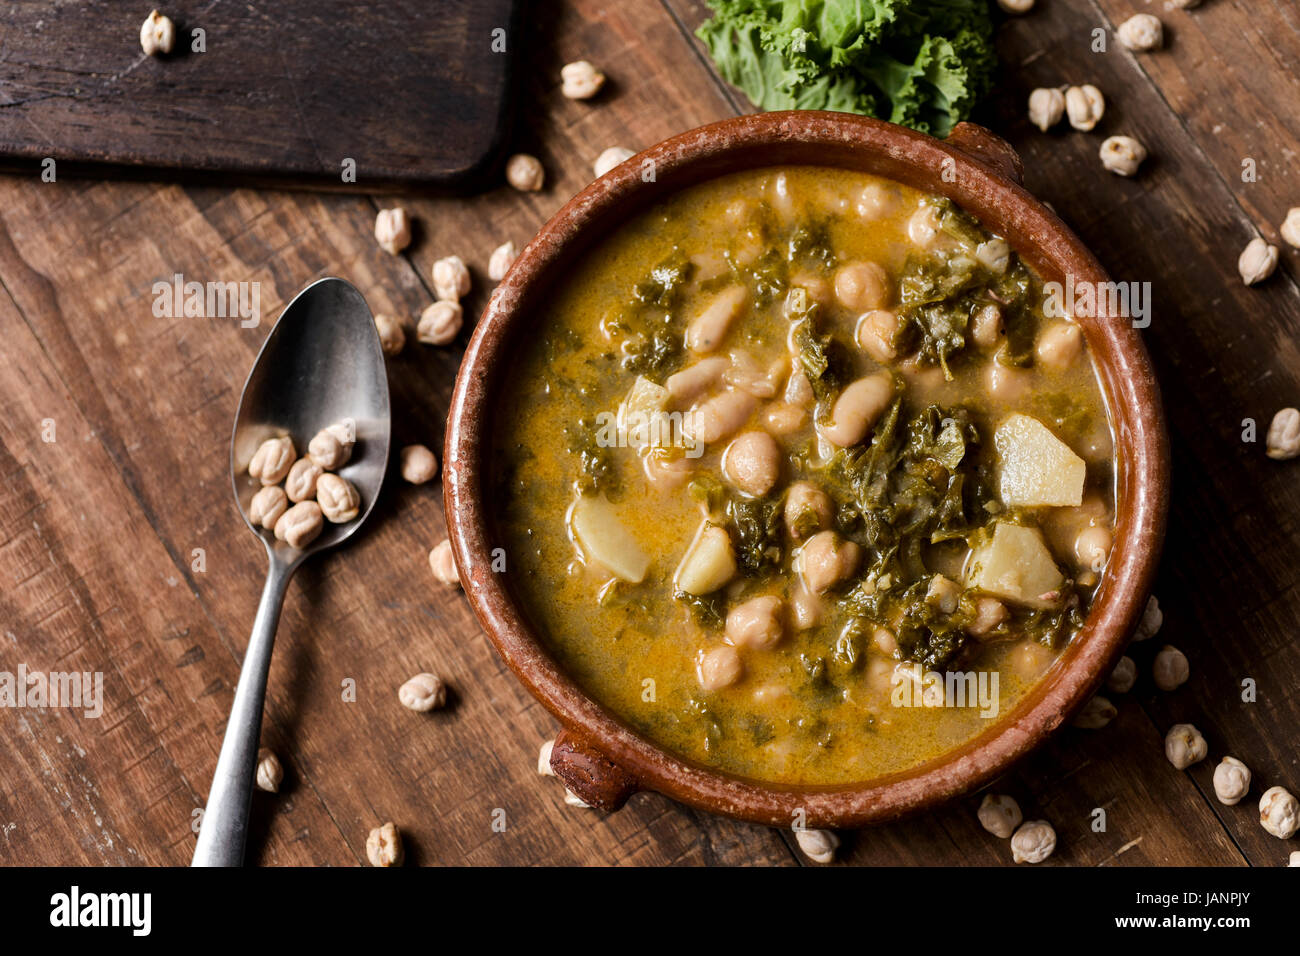 closeup of an earthenware bowl with kale stew with potatoes and chickpeas, on a rustic wooden table sprinkled with - Stock Image